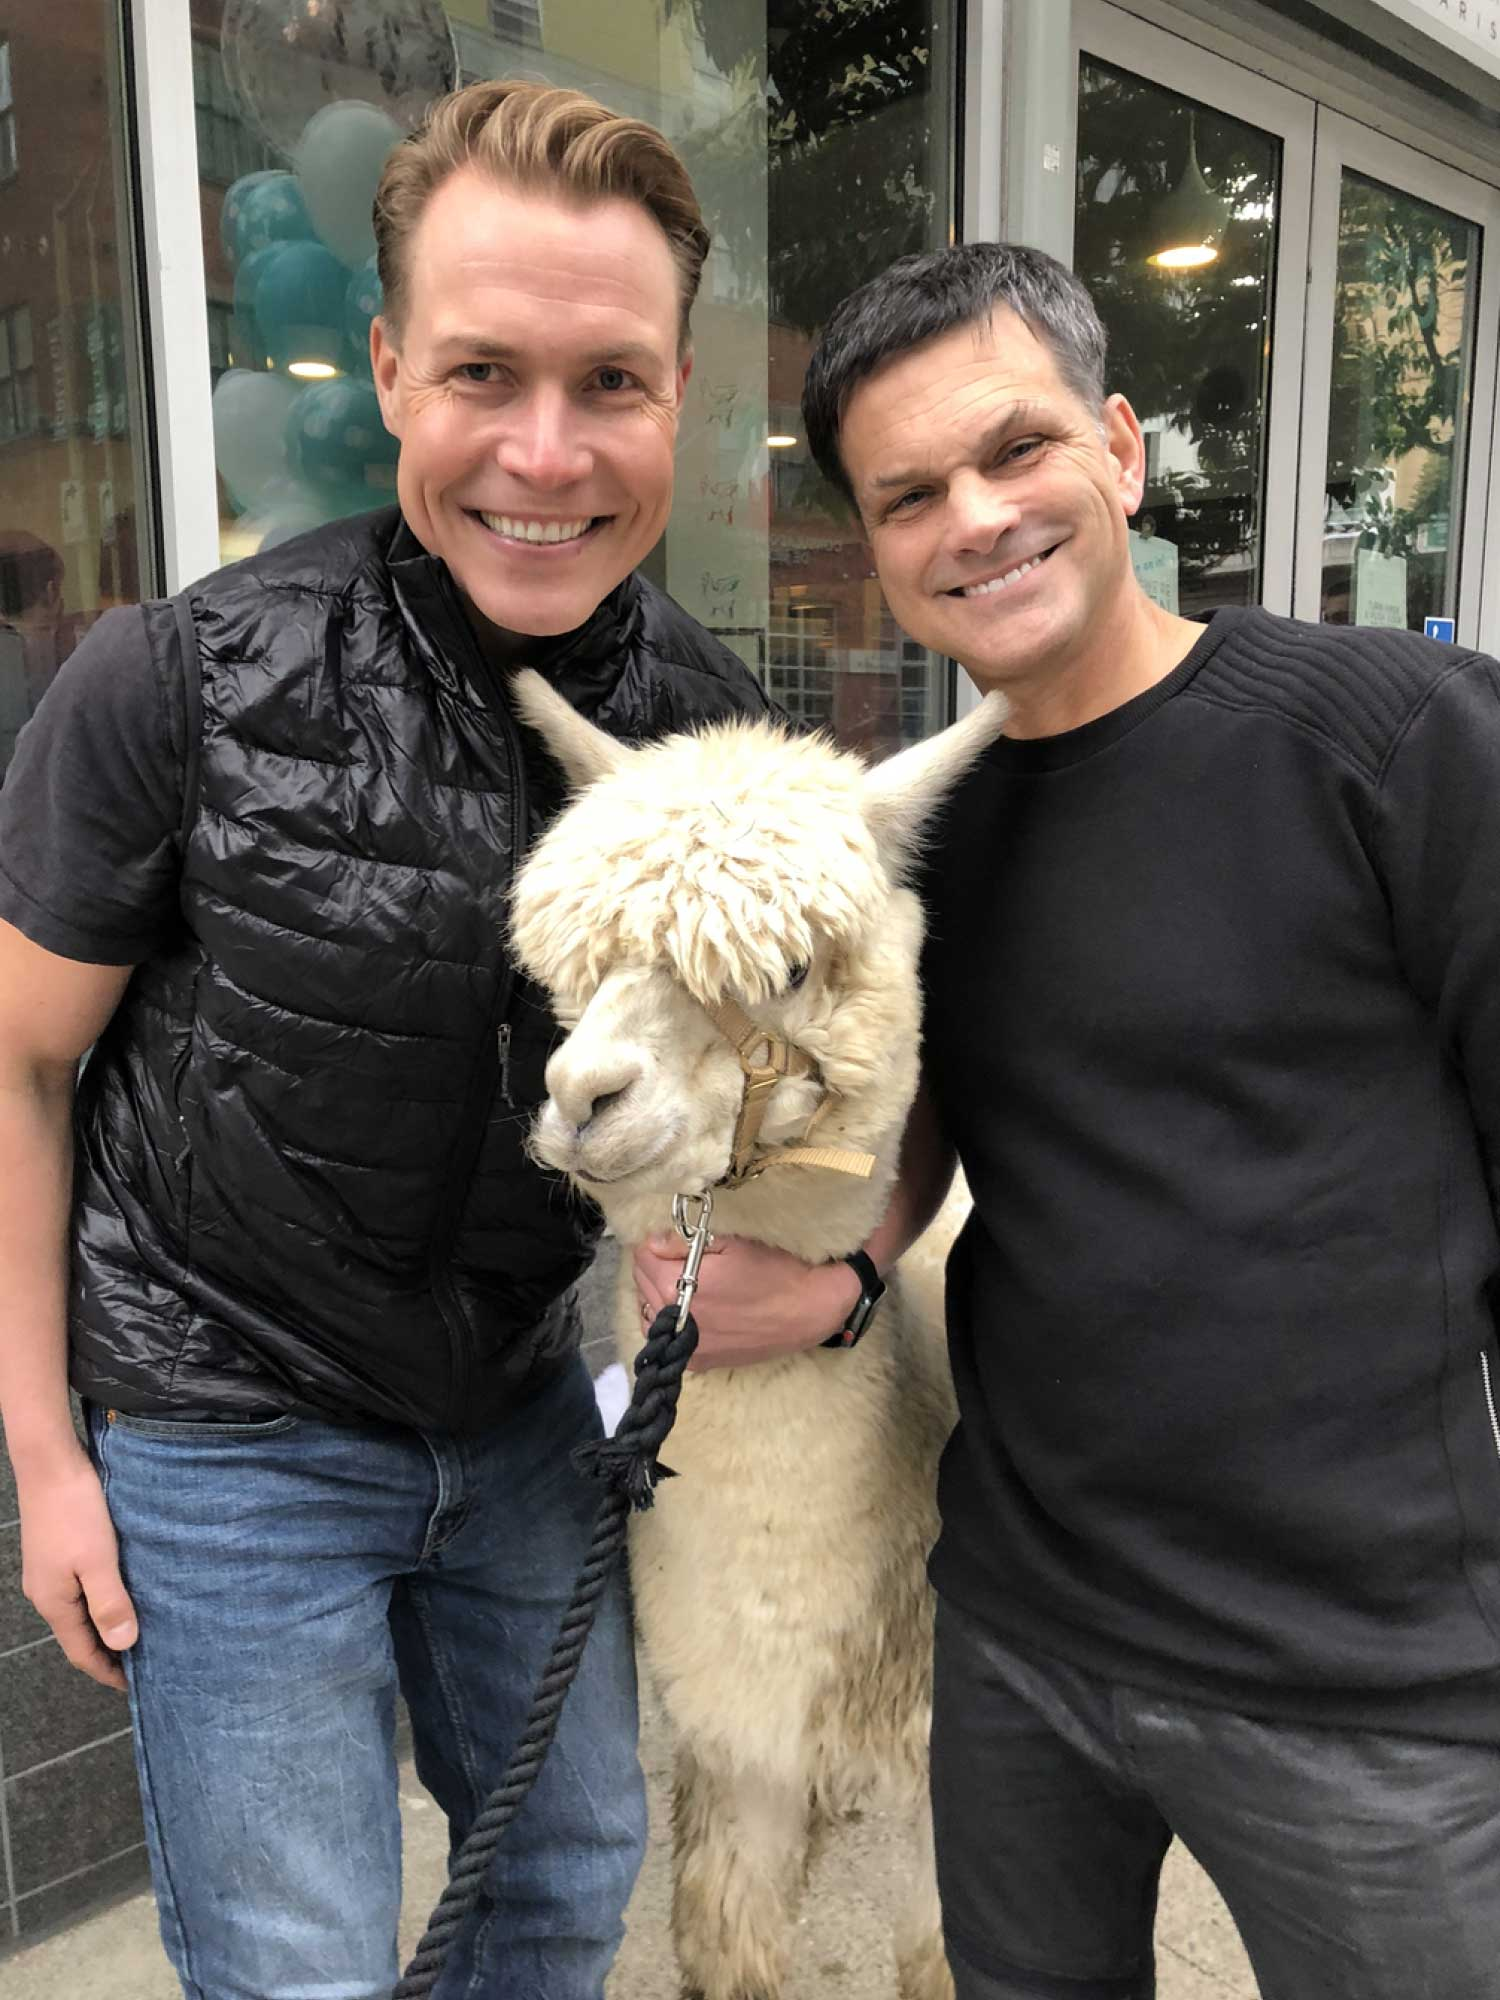 Sami Inkinen (Virta CEO) and David Hatch (Head of UXD) smiling next to an alpaca outside a coffee shop